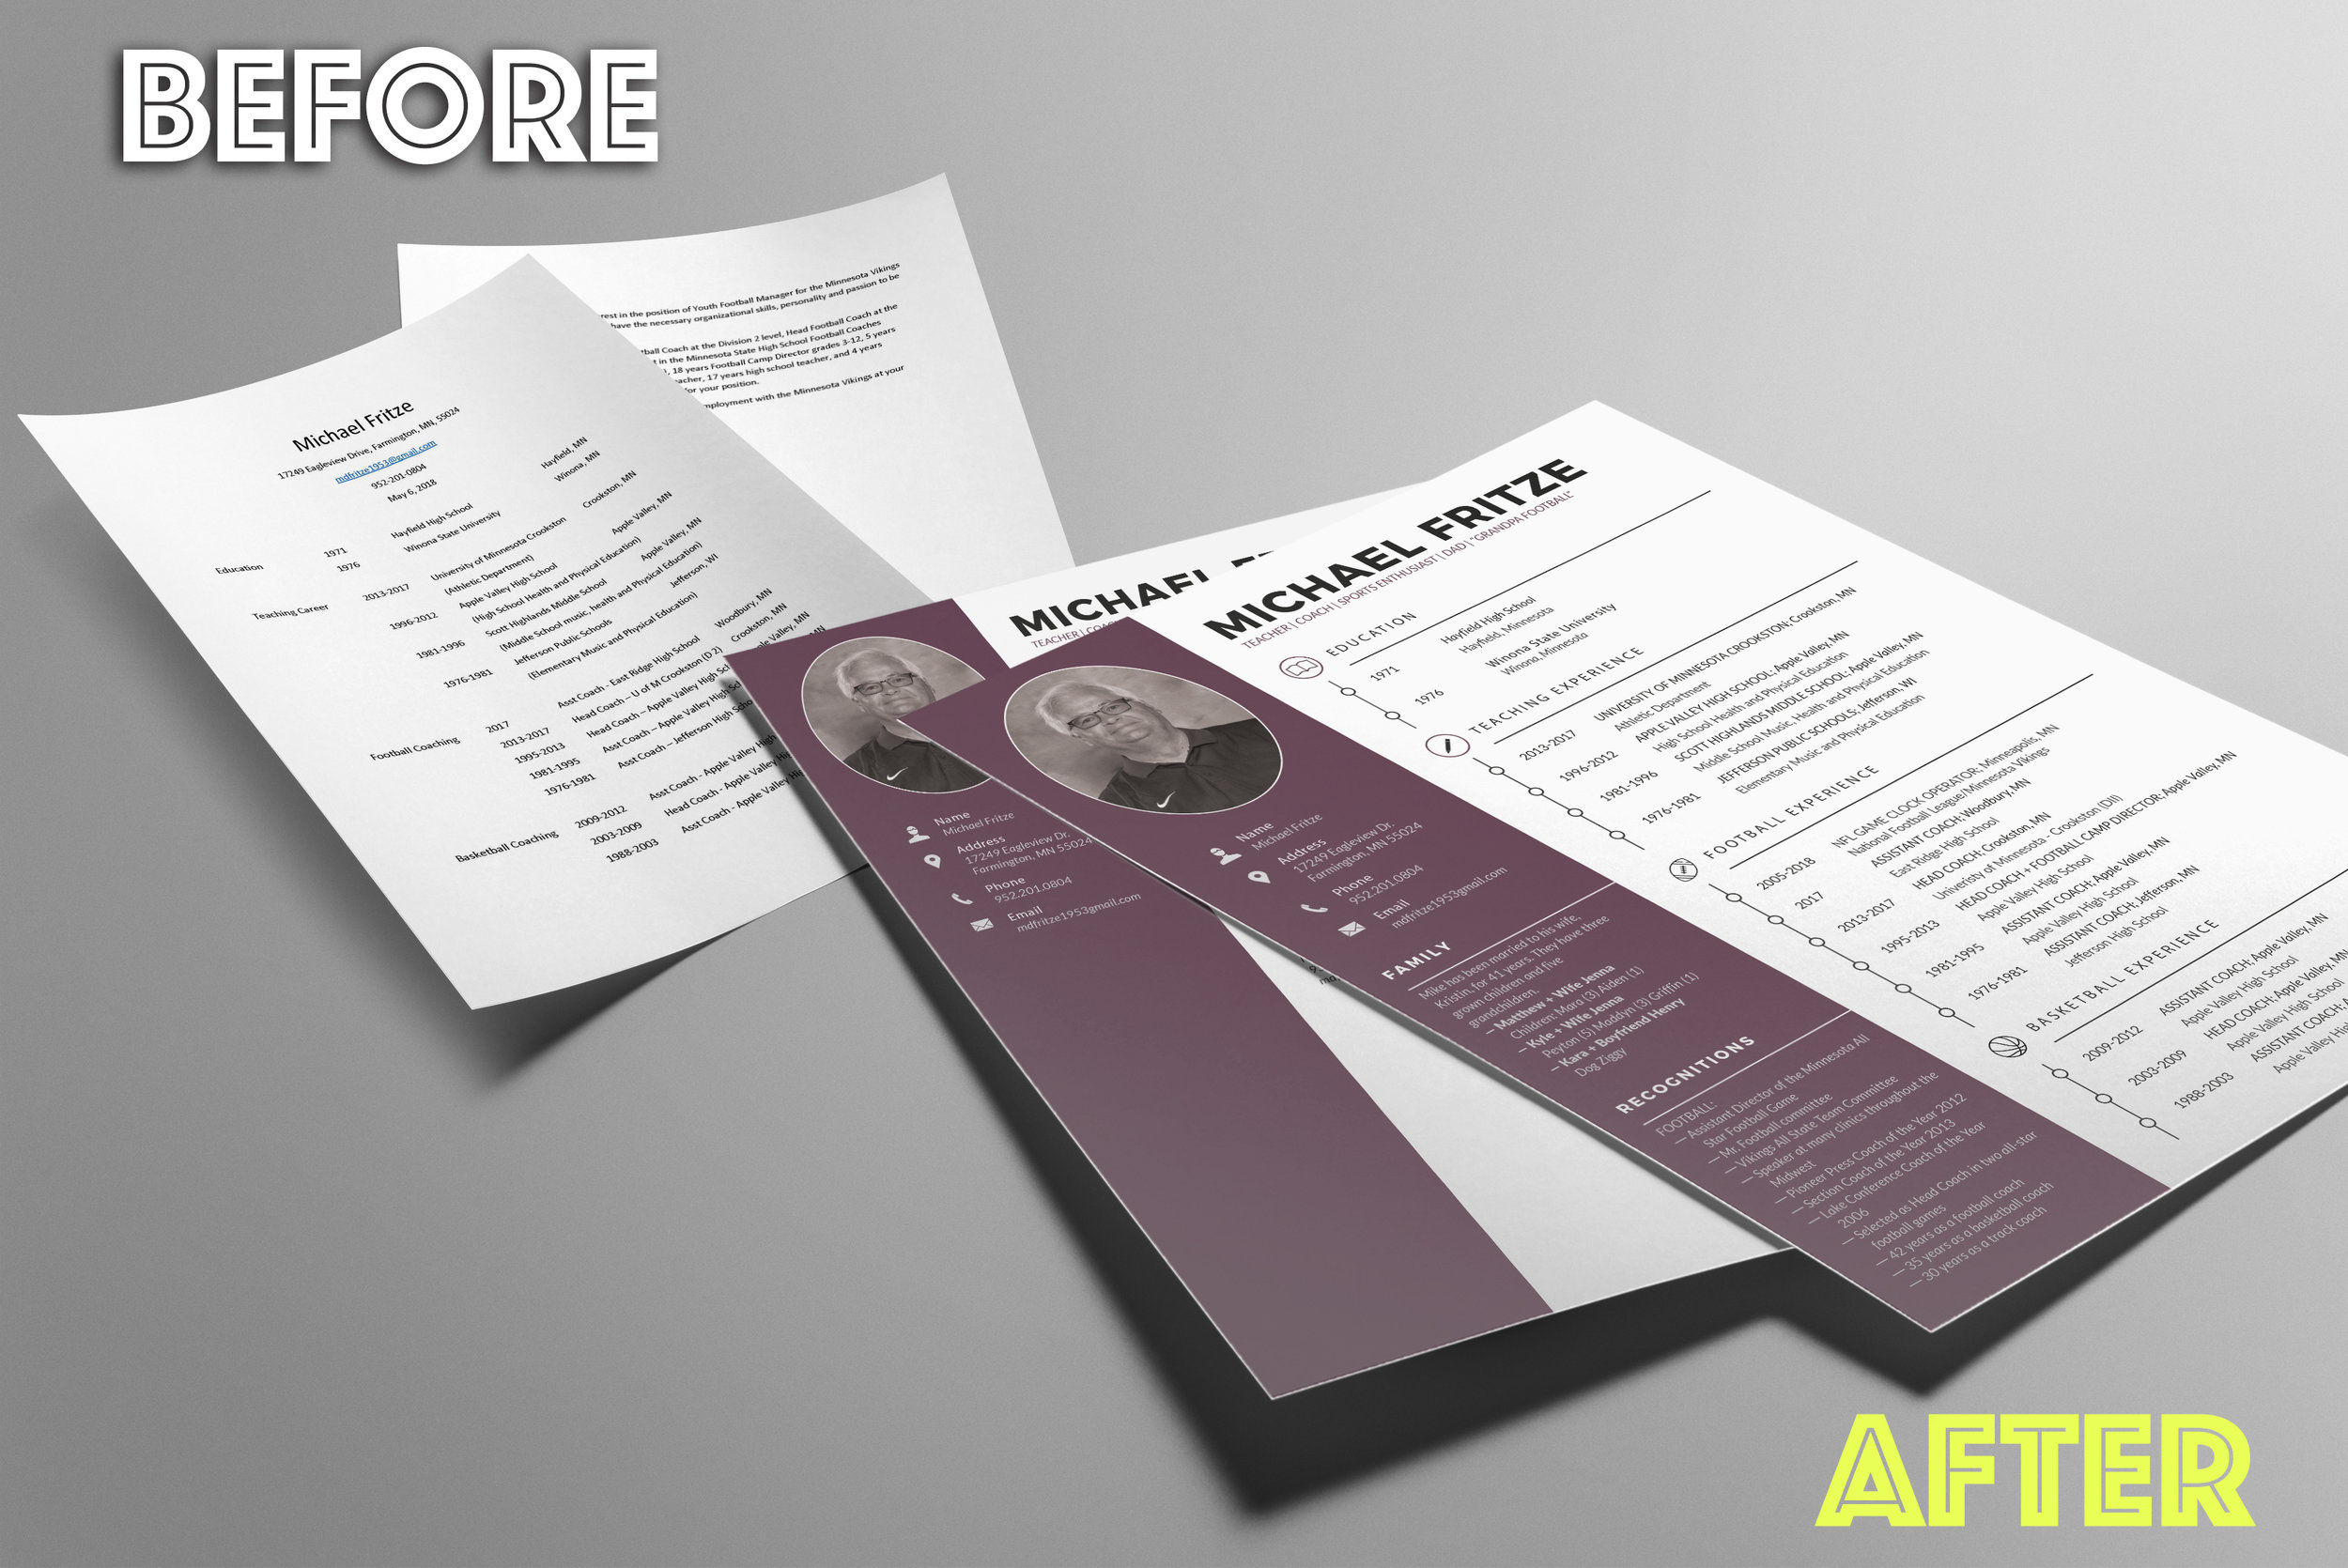 Wednesday MediaMike Fritze Resume mockup BEFORE AND AFTER.jpg